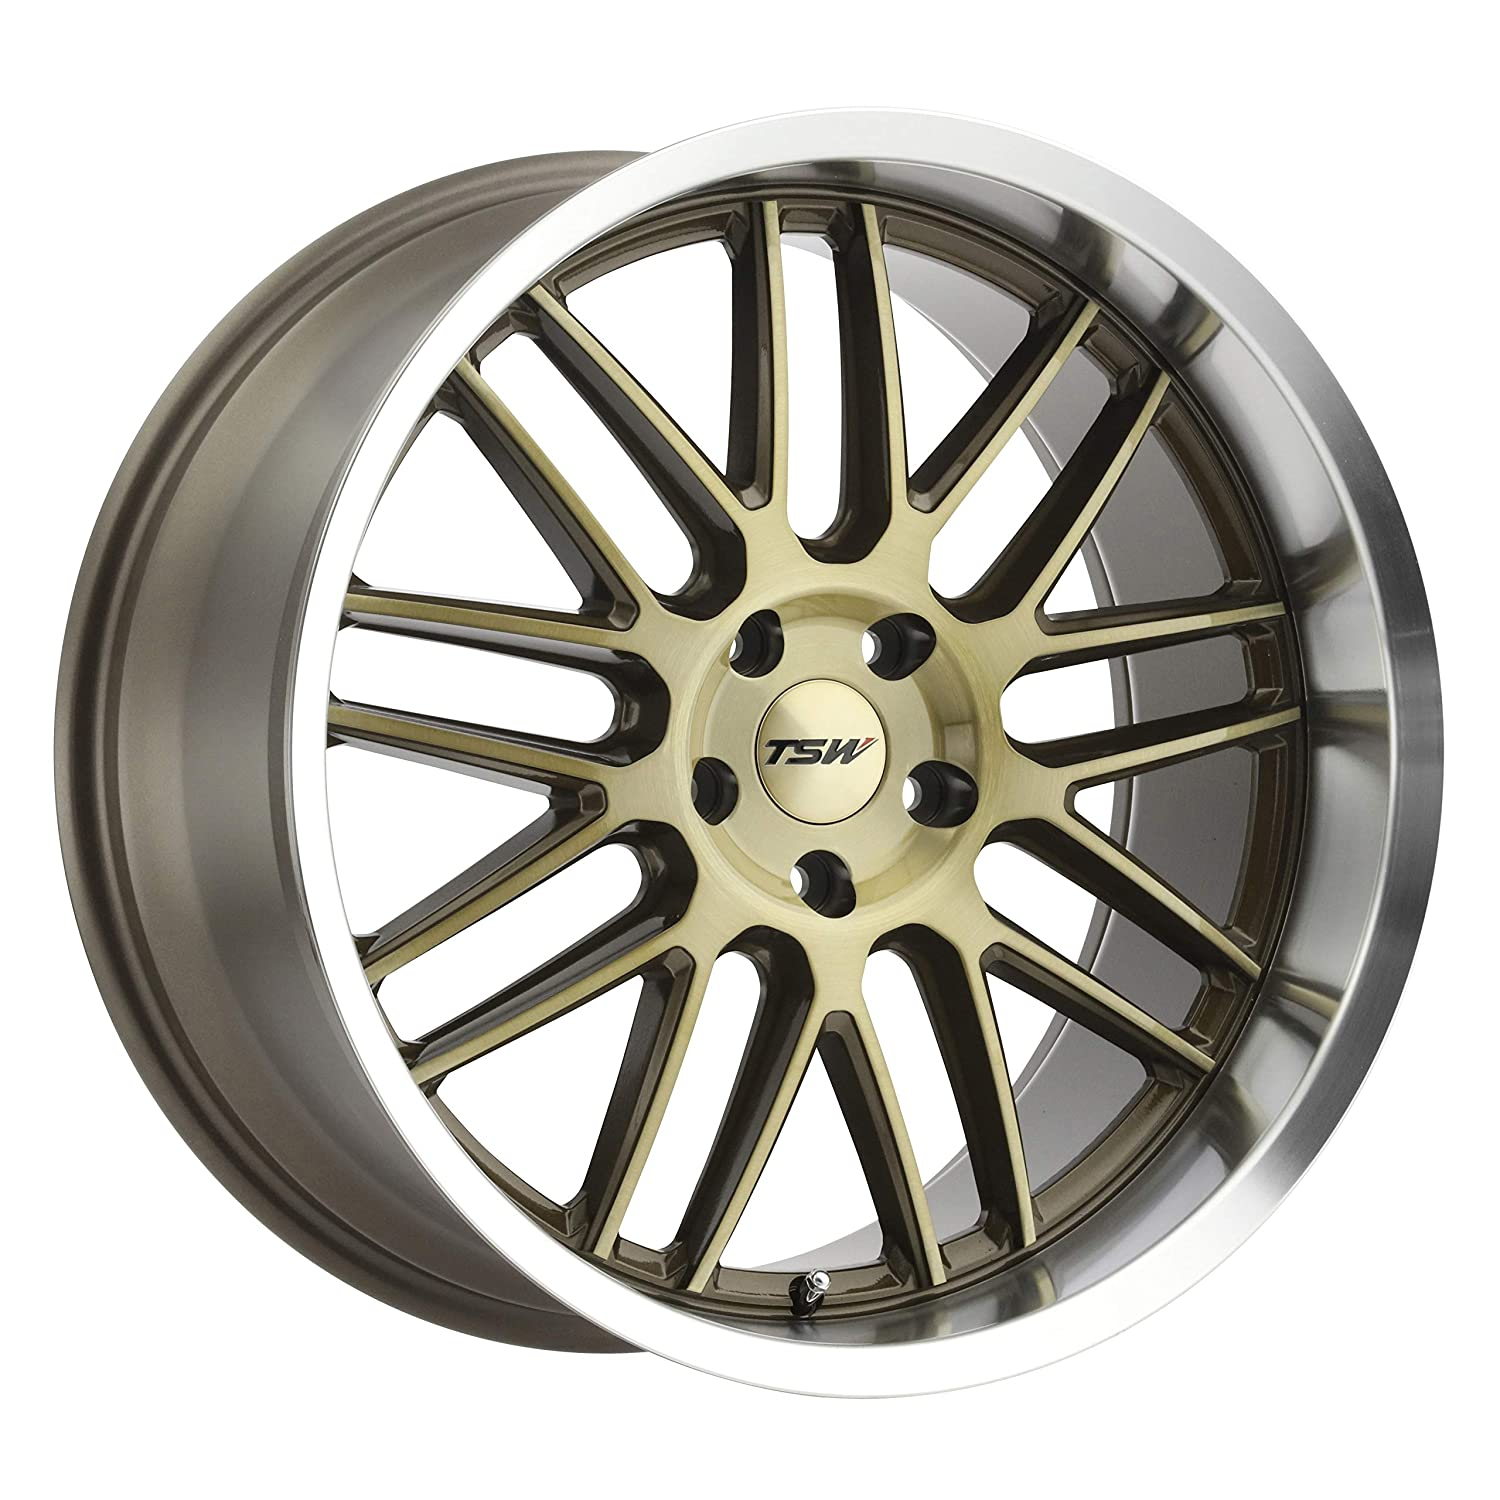 """TSW AVALON Custom Wheel - 18"""" x 9.5"""", 39 Offset, 5x114.3 Bolt Pattern, 76.1mm Hub - Bronze with Brushed Face and Machined Lip"""